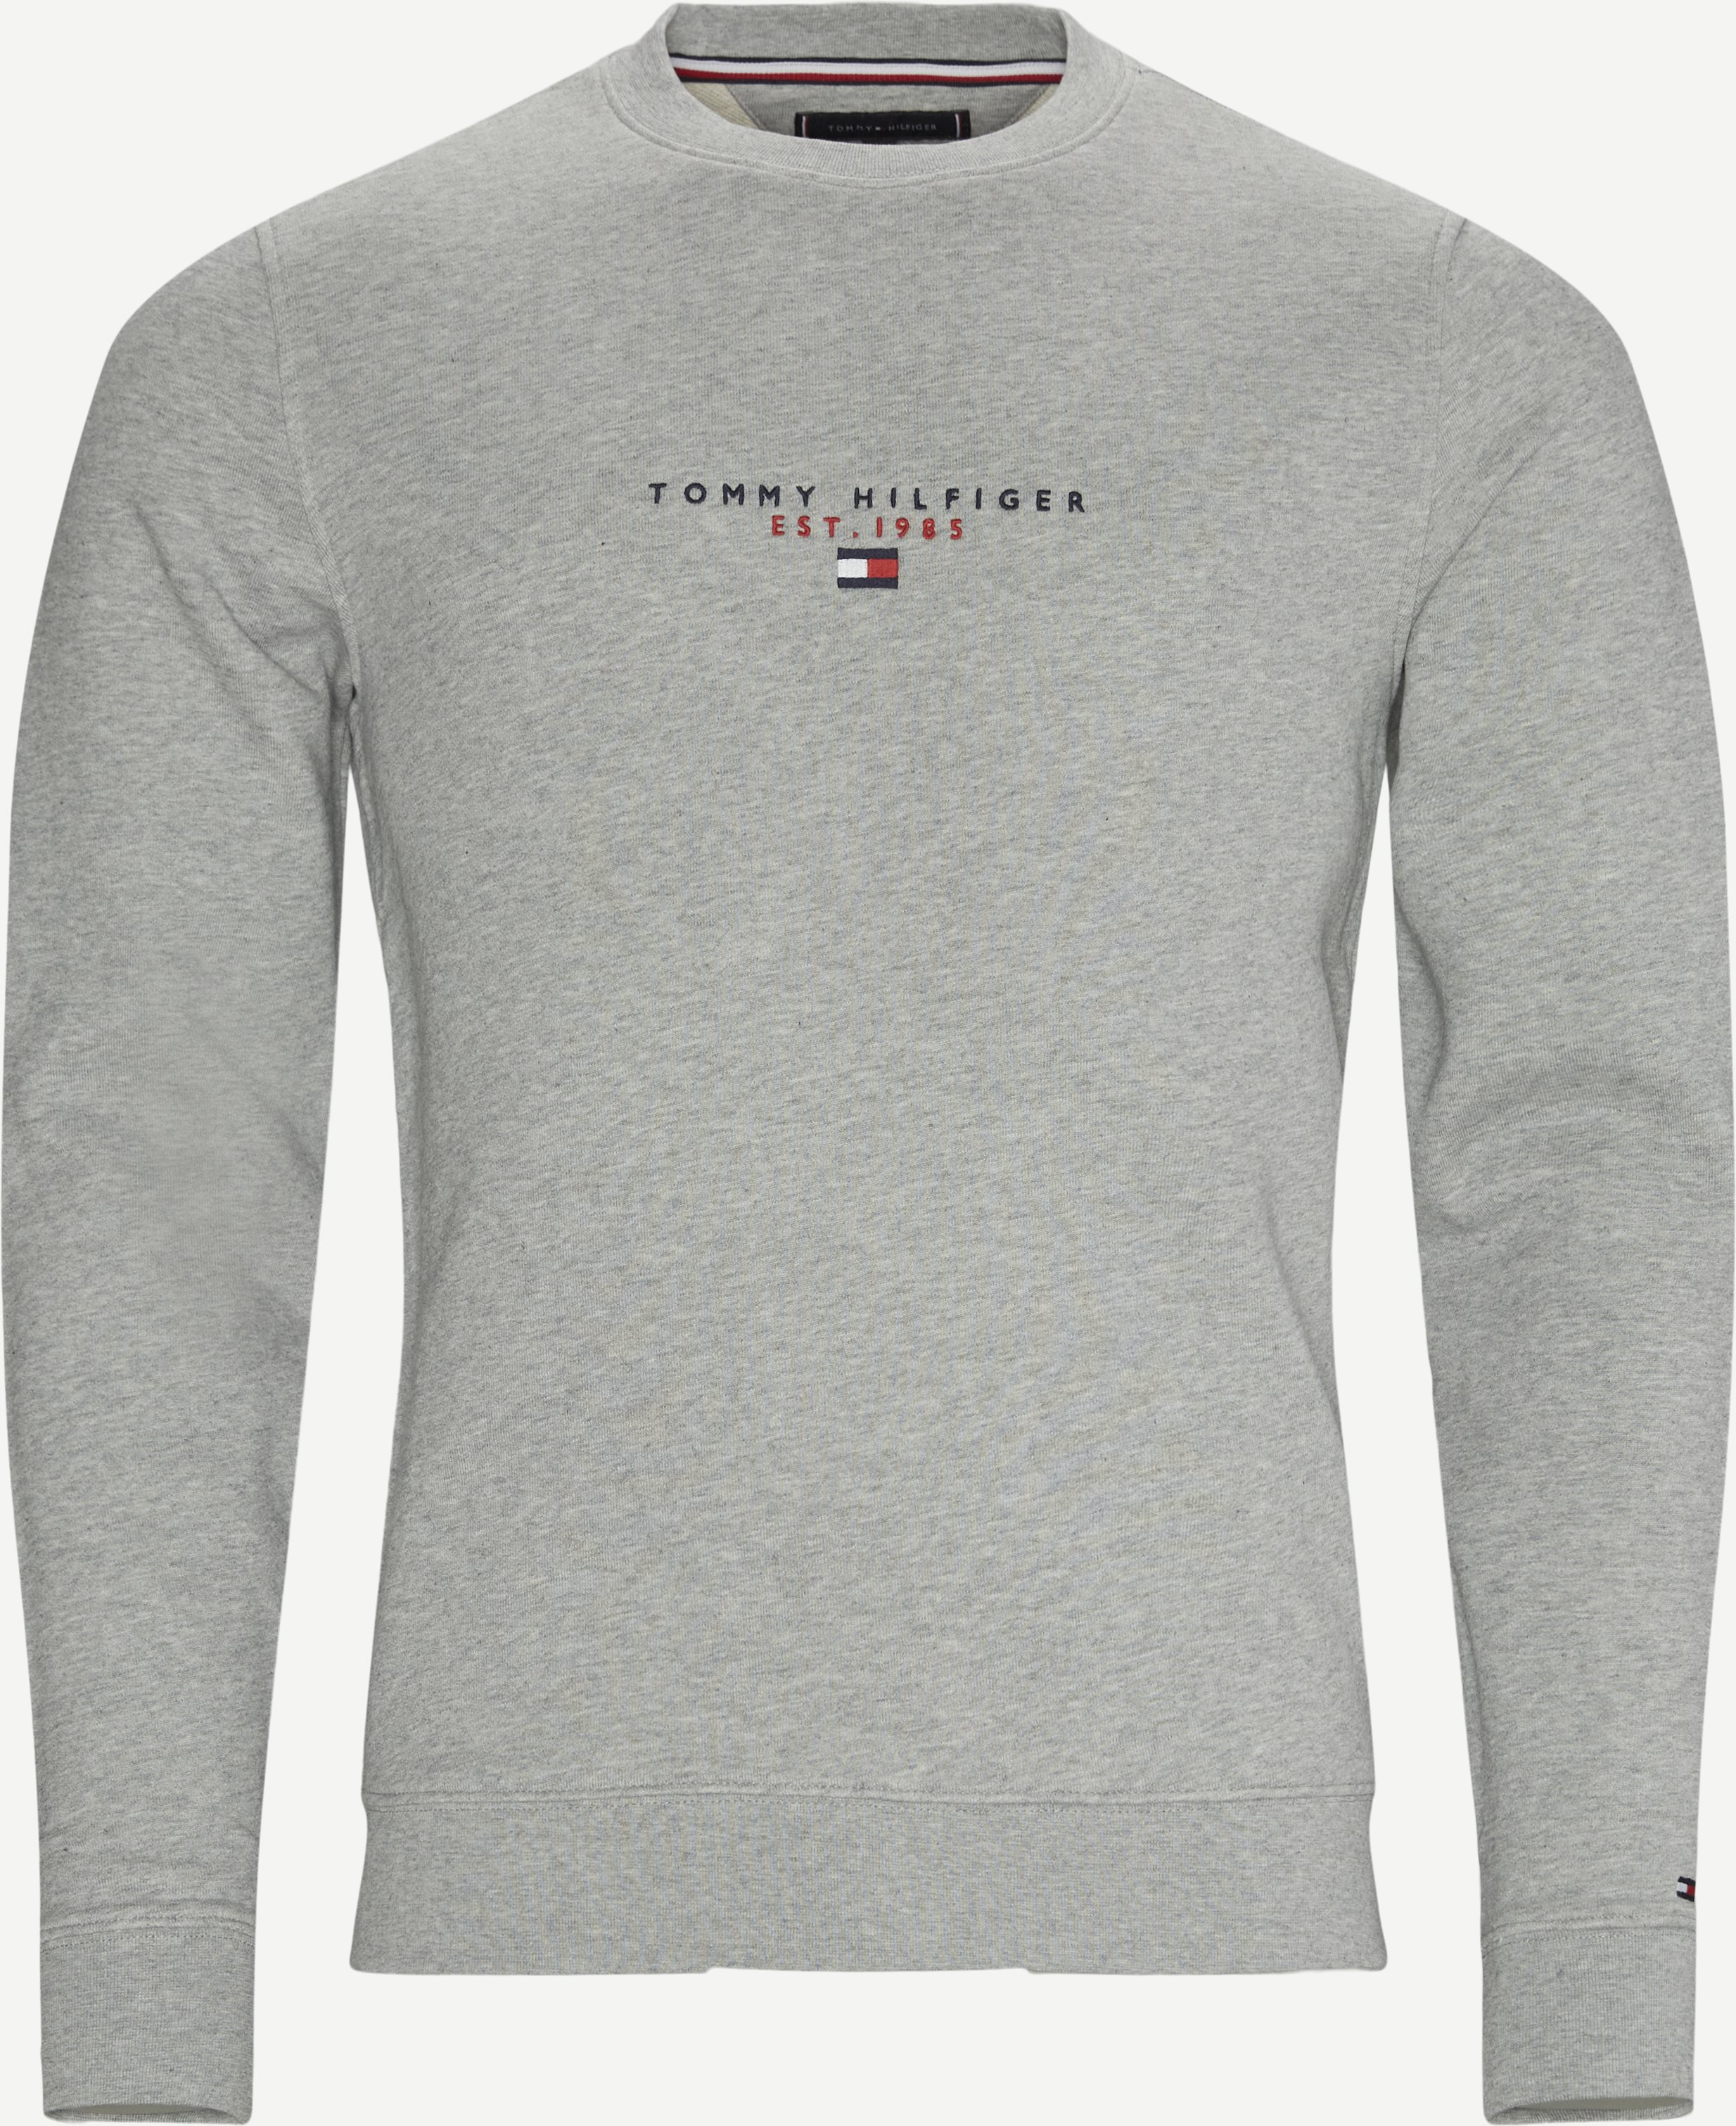 Essential Tommy Crewneck Sweatshirt - Sweatshirts - Regular - Grey